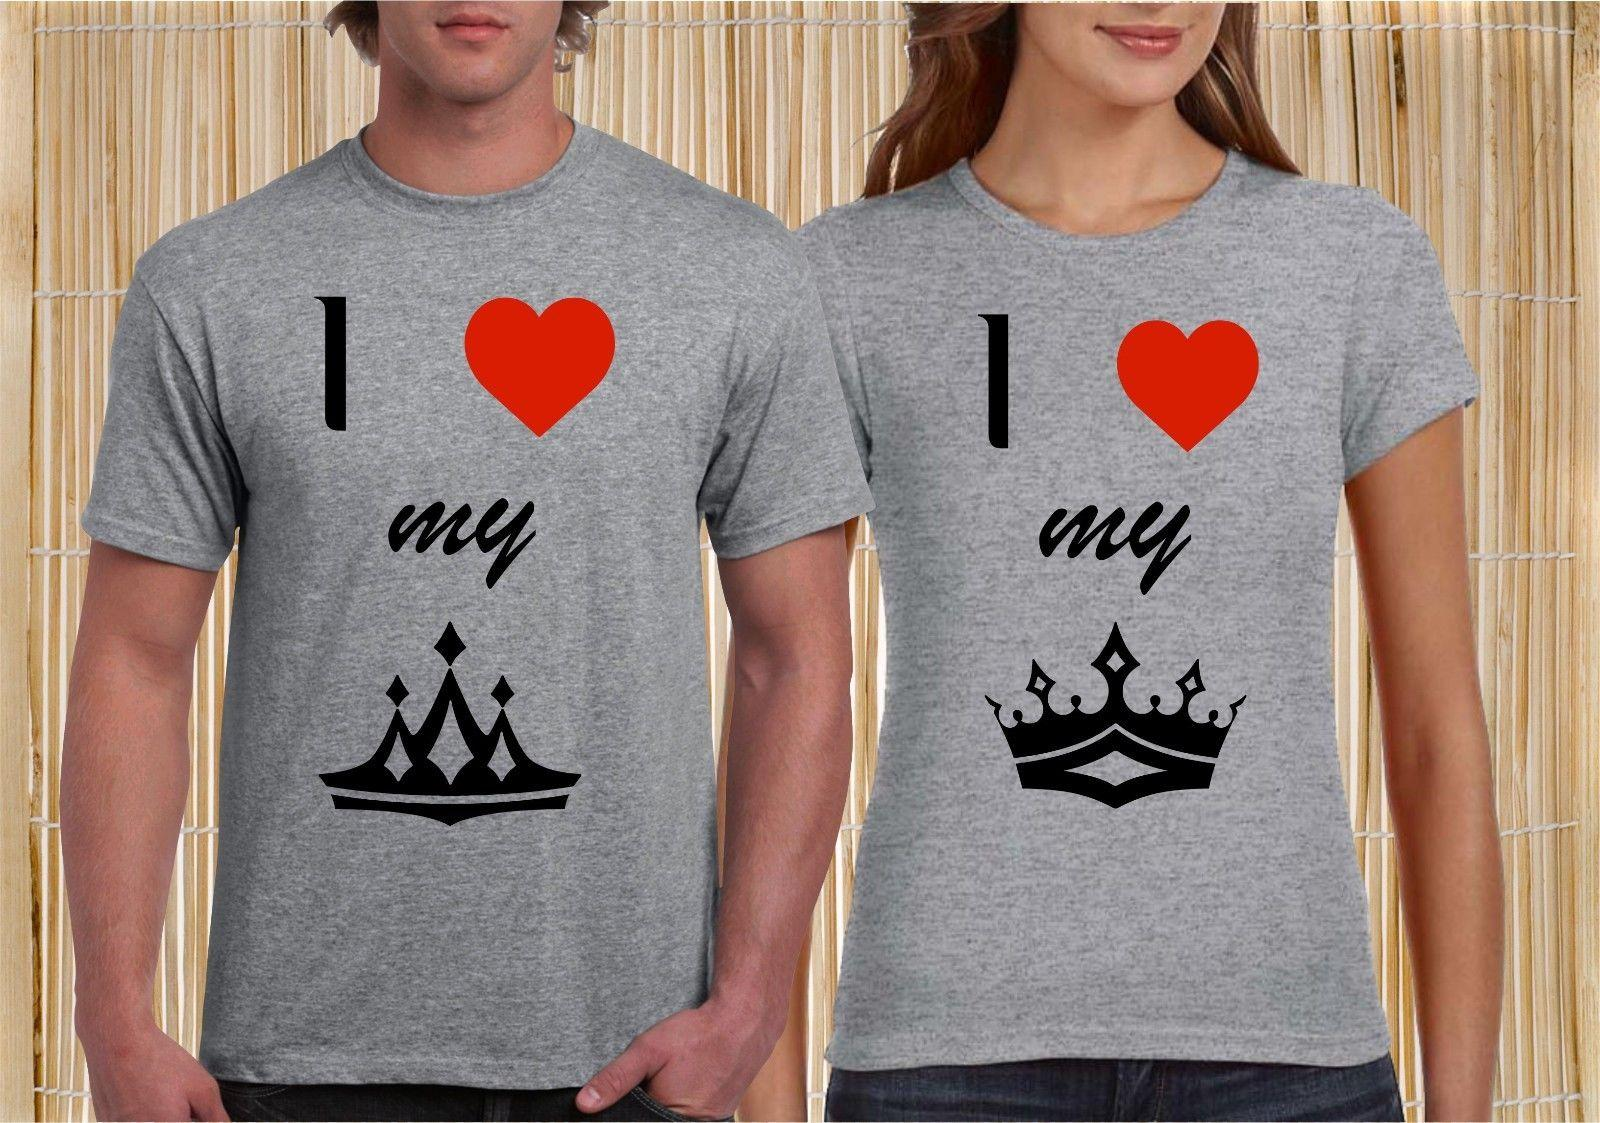 20b17860c0 Details Zu King Queen Love Couple Matching T Shirt Valentine Christmas  Husband Wife Gifts Funny Unisex Tee Designer T Shirt Coolest T Shirts From  ...